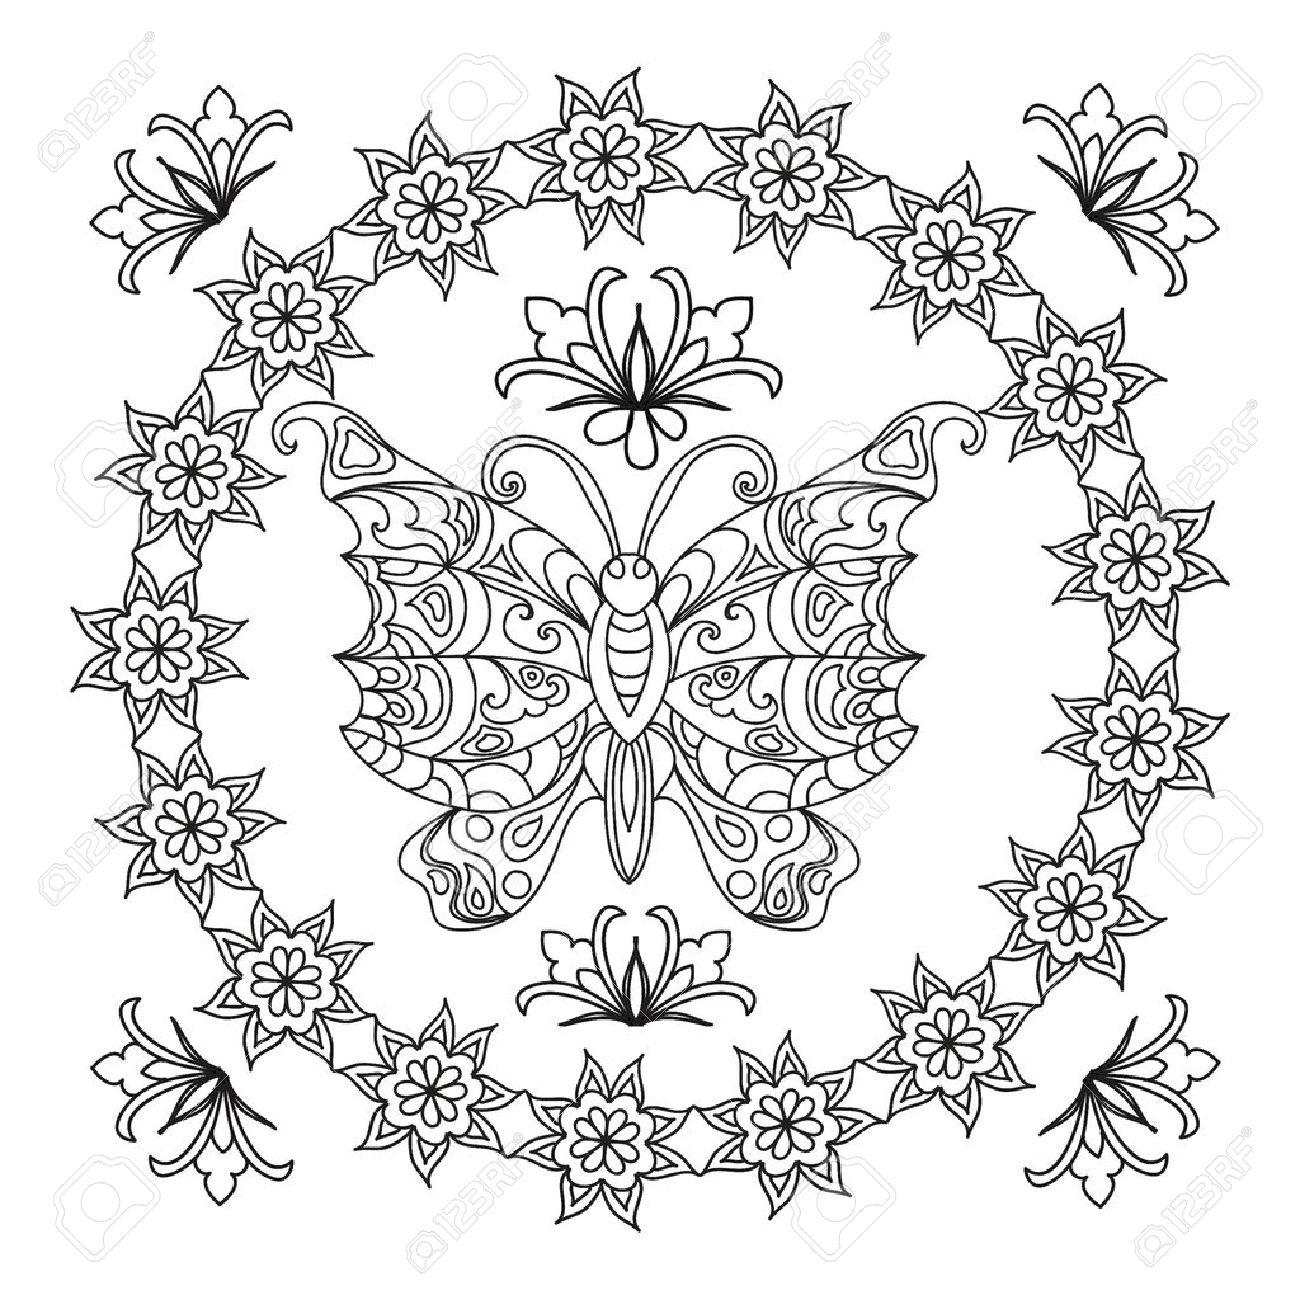 coloring pages butterfly abstract mandala zentangle - Royalty Free Coloring Pages